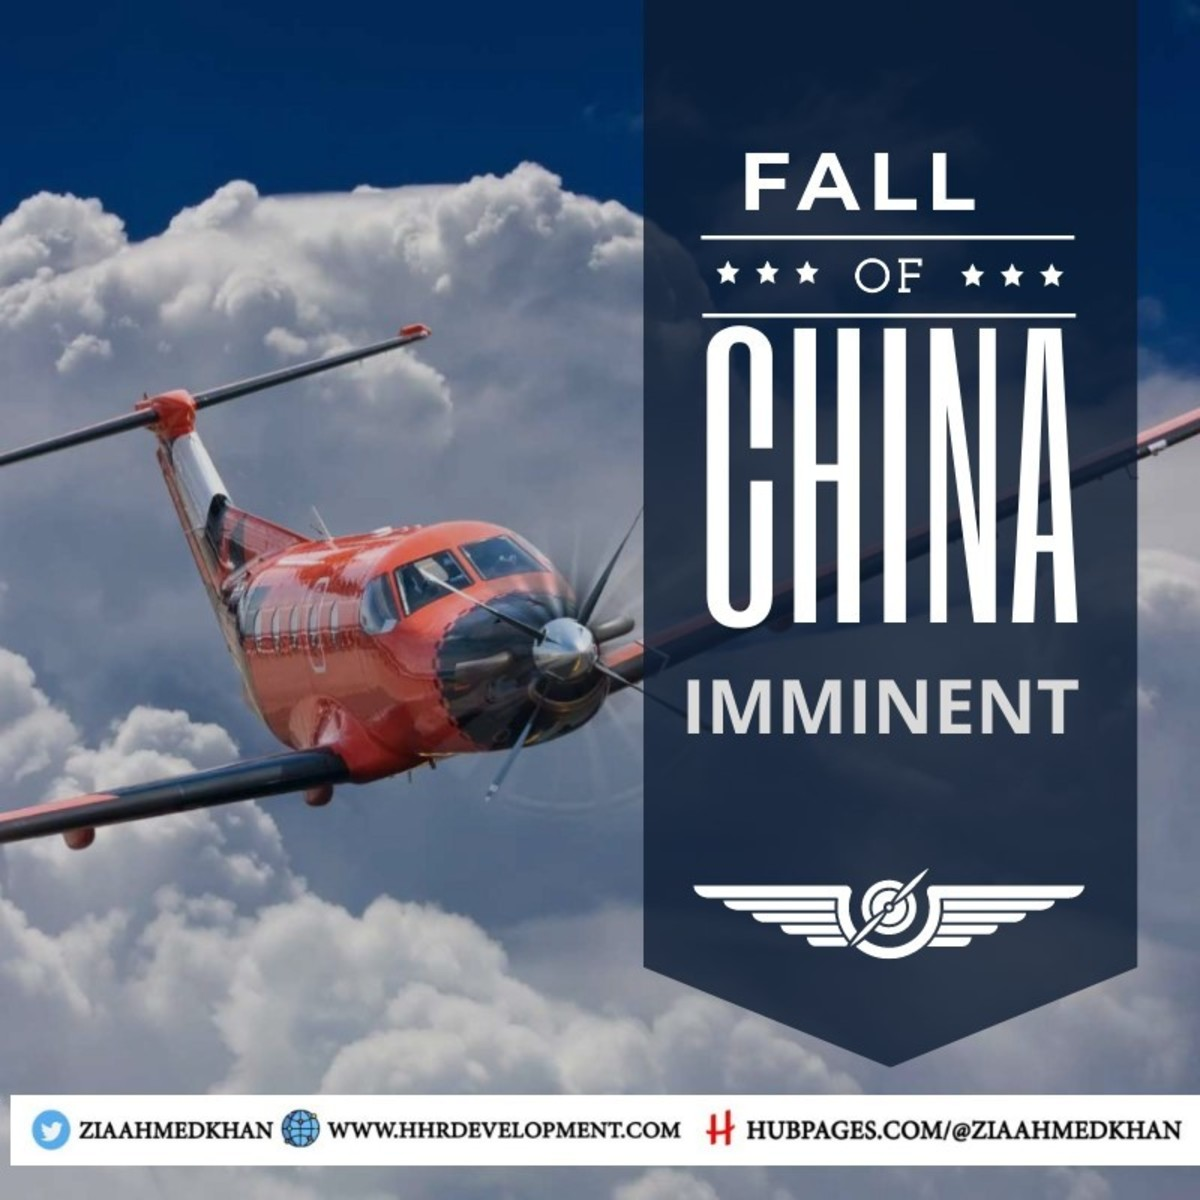 The Fall of China